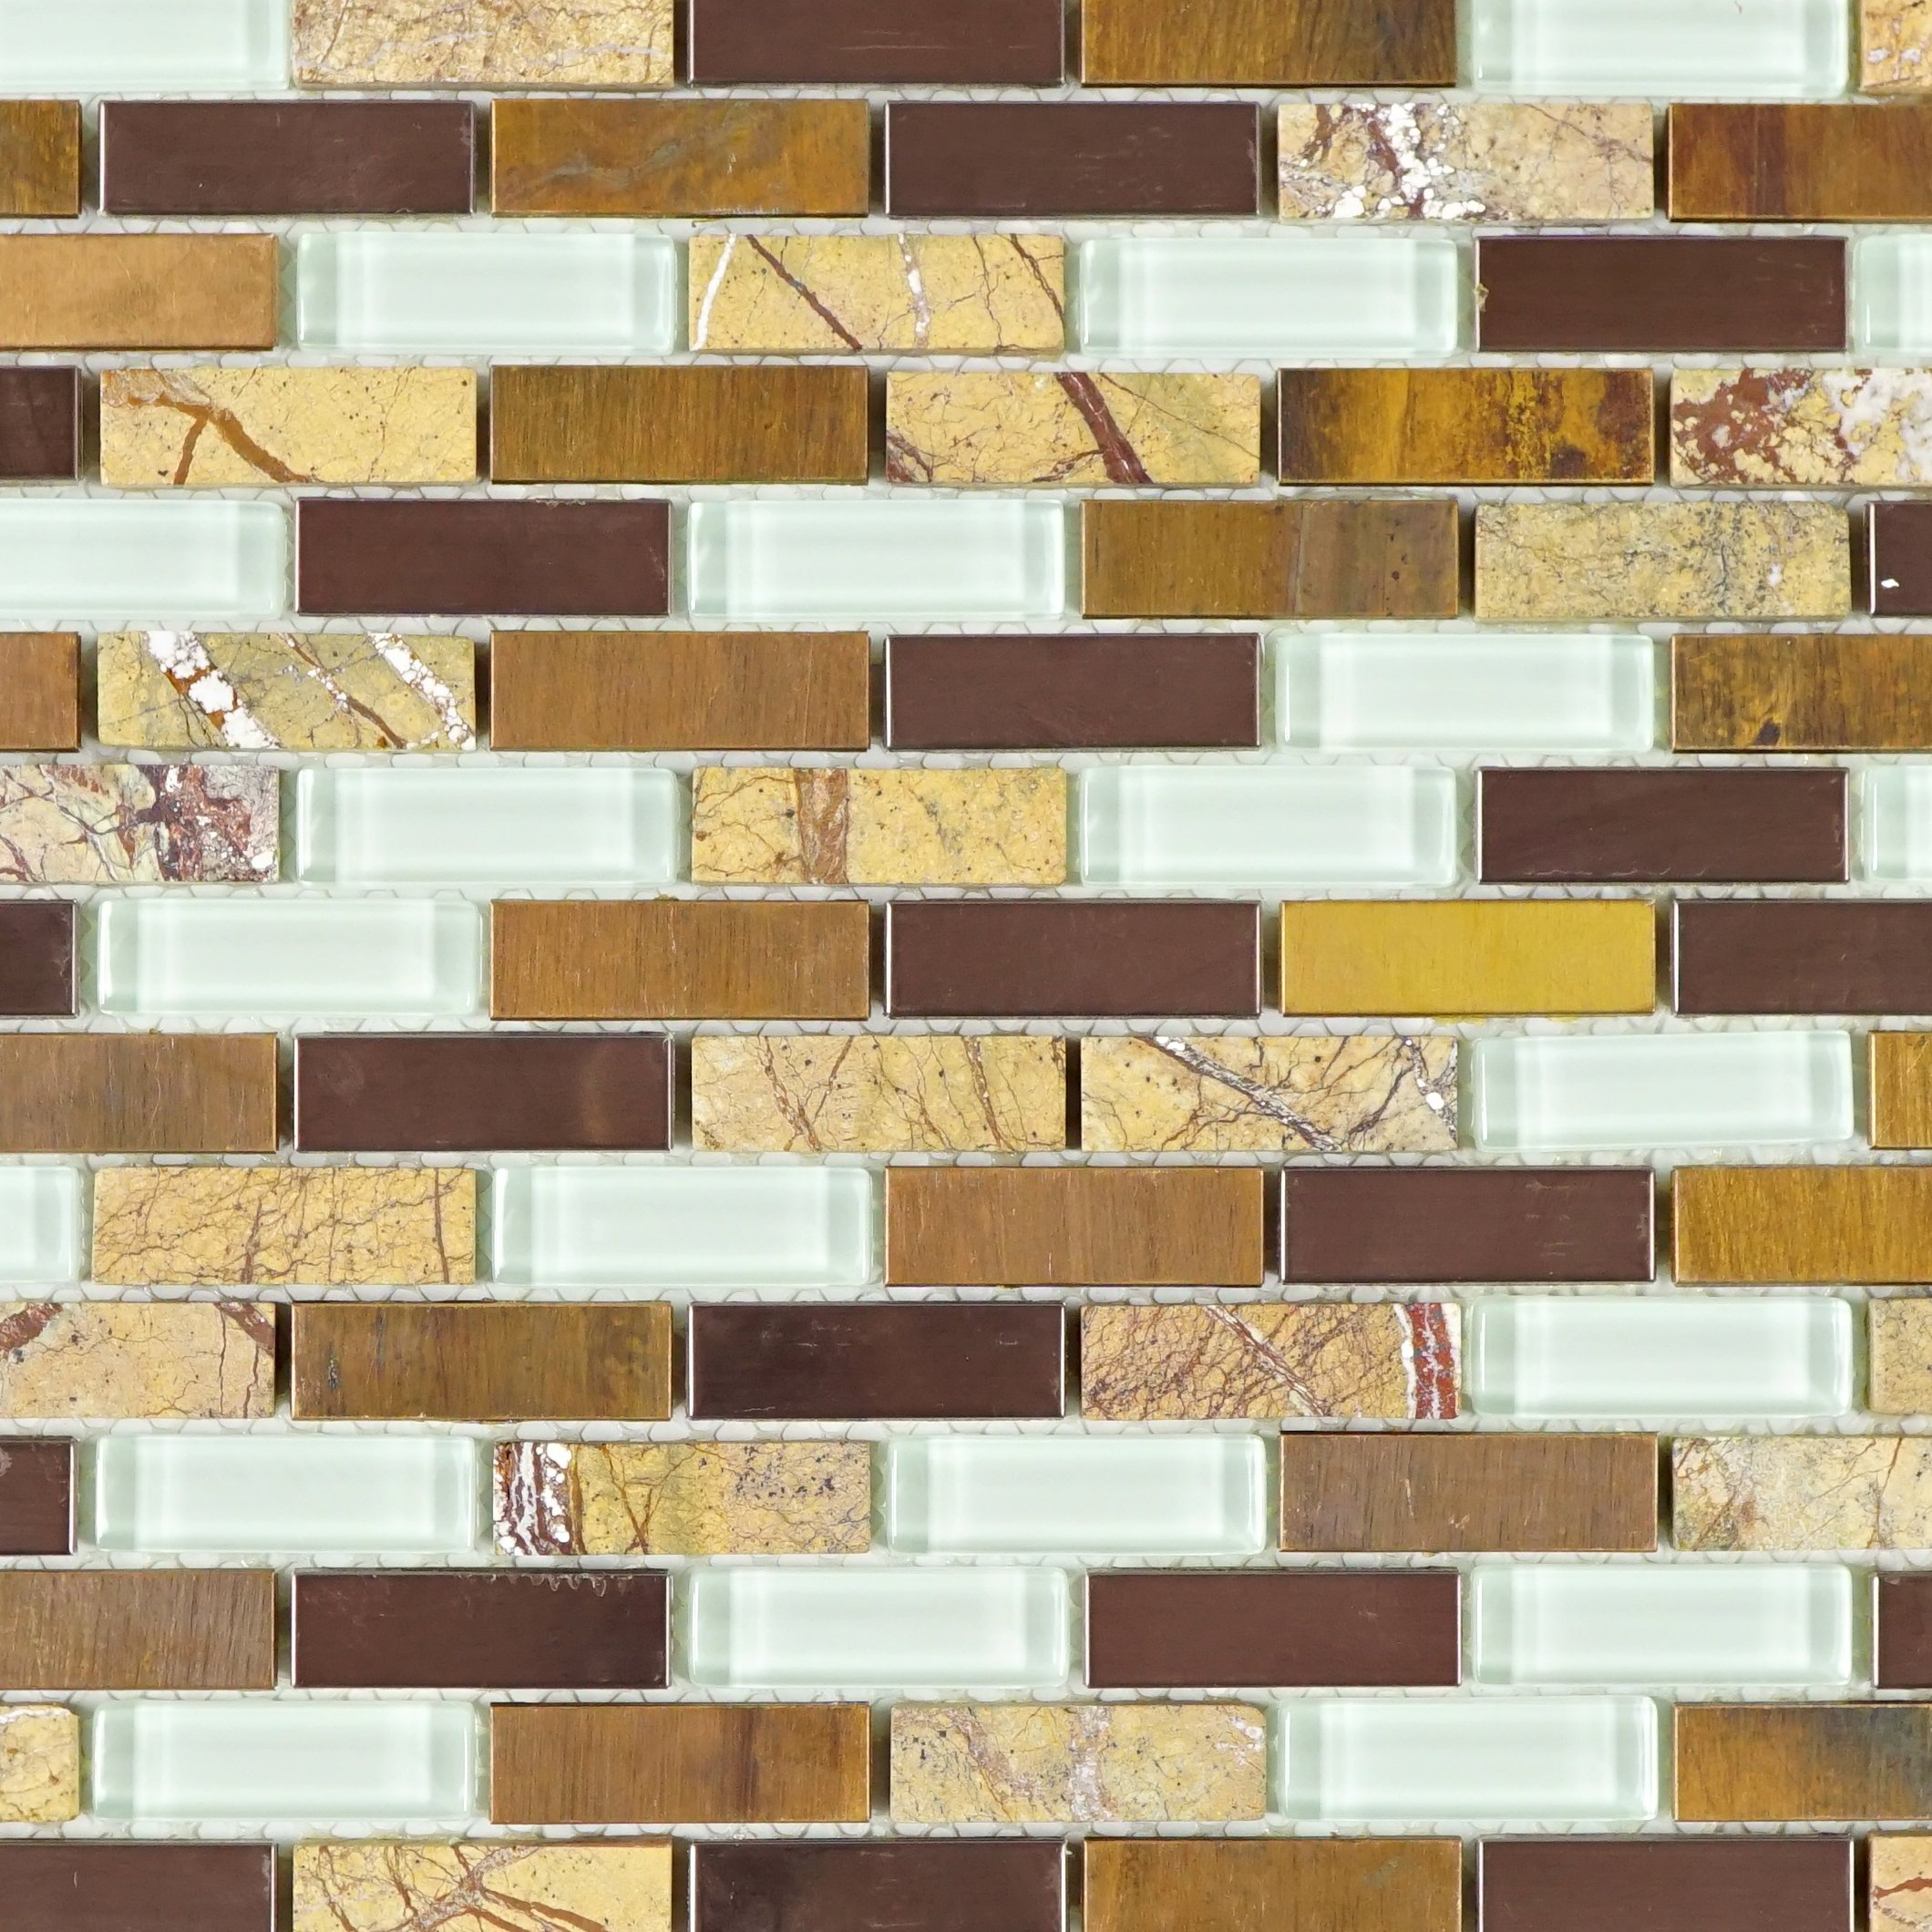 Tile Generation- TMSG-01 Brown stone and glass mosaic tile with copper stainless steel 12x12 (1 sheet)